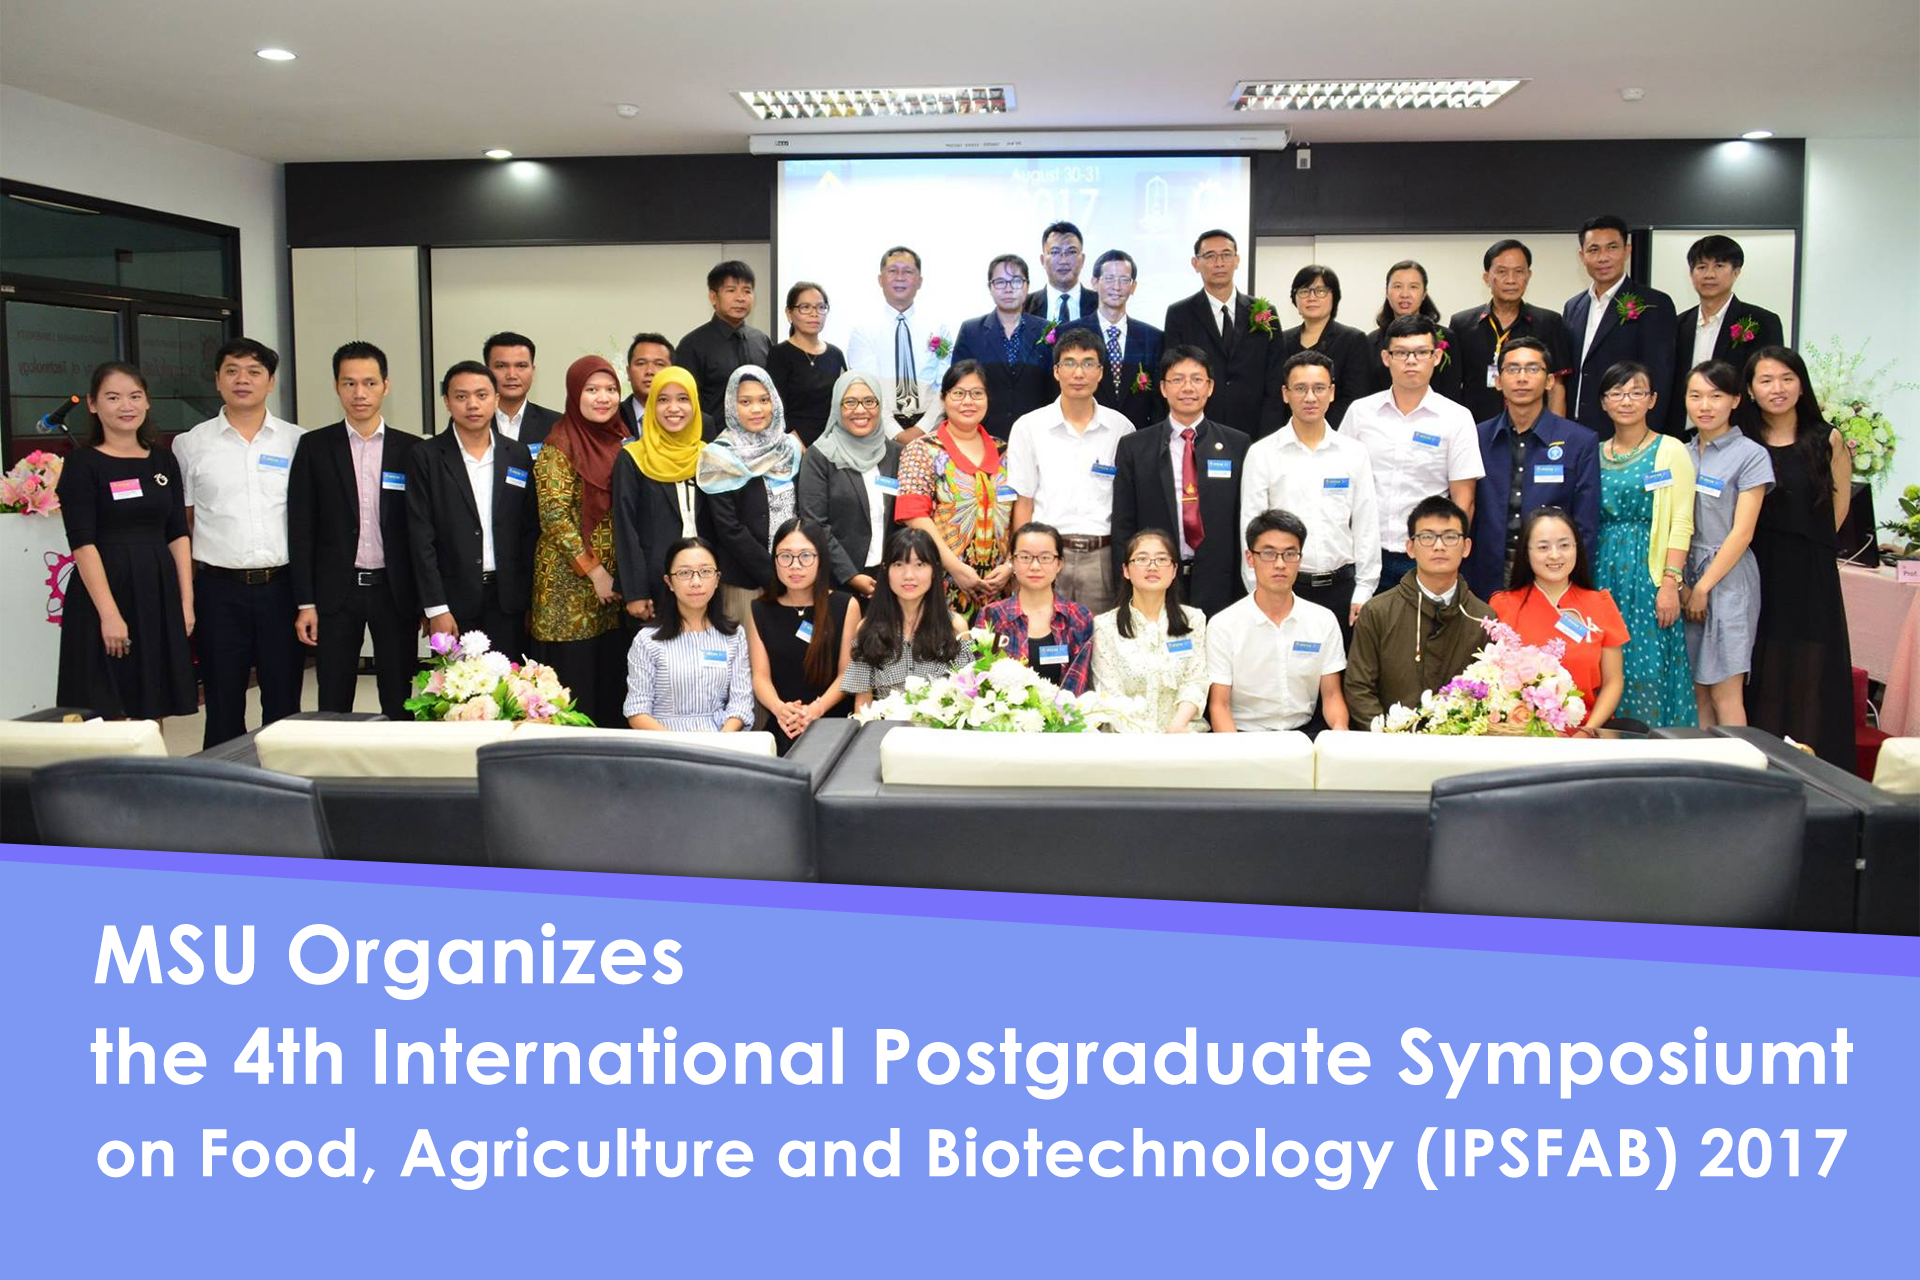 MSU Organizes the 4th International Postgraduate Symposium on Food, Agriculture and Biotechnology (IPSFAB) 2017